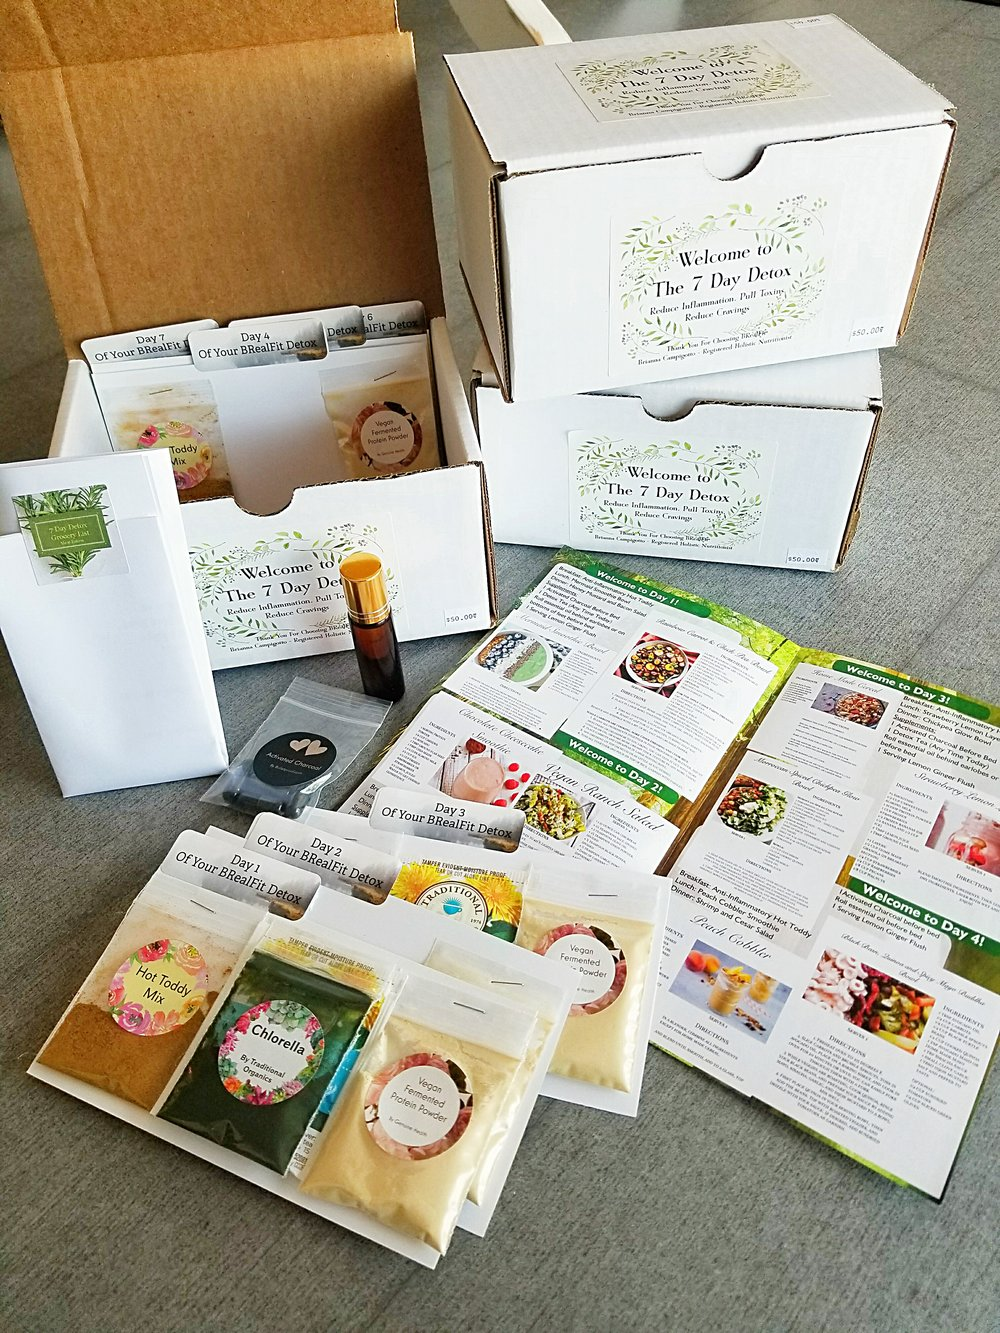 The Detox Box - Generally, we offer 2 different types of programs. One, is our 7 days detox program that includes a 7 day mean plan, a grocery list, vegan fermented protein powder for the week and some natural supplements like activated charcoal, organic spices, herbs, and essential oils. This detox program is great for anyone looking to help with digestion, inflation, bloating, cravings, and weight loss.